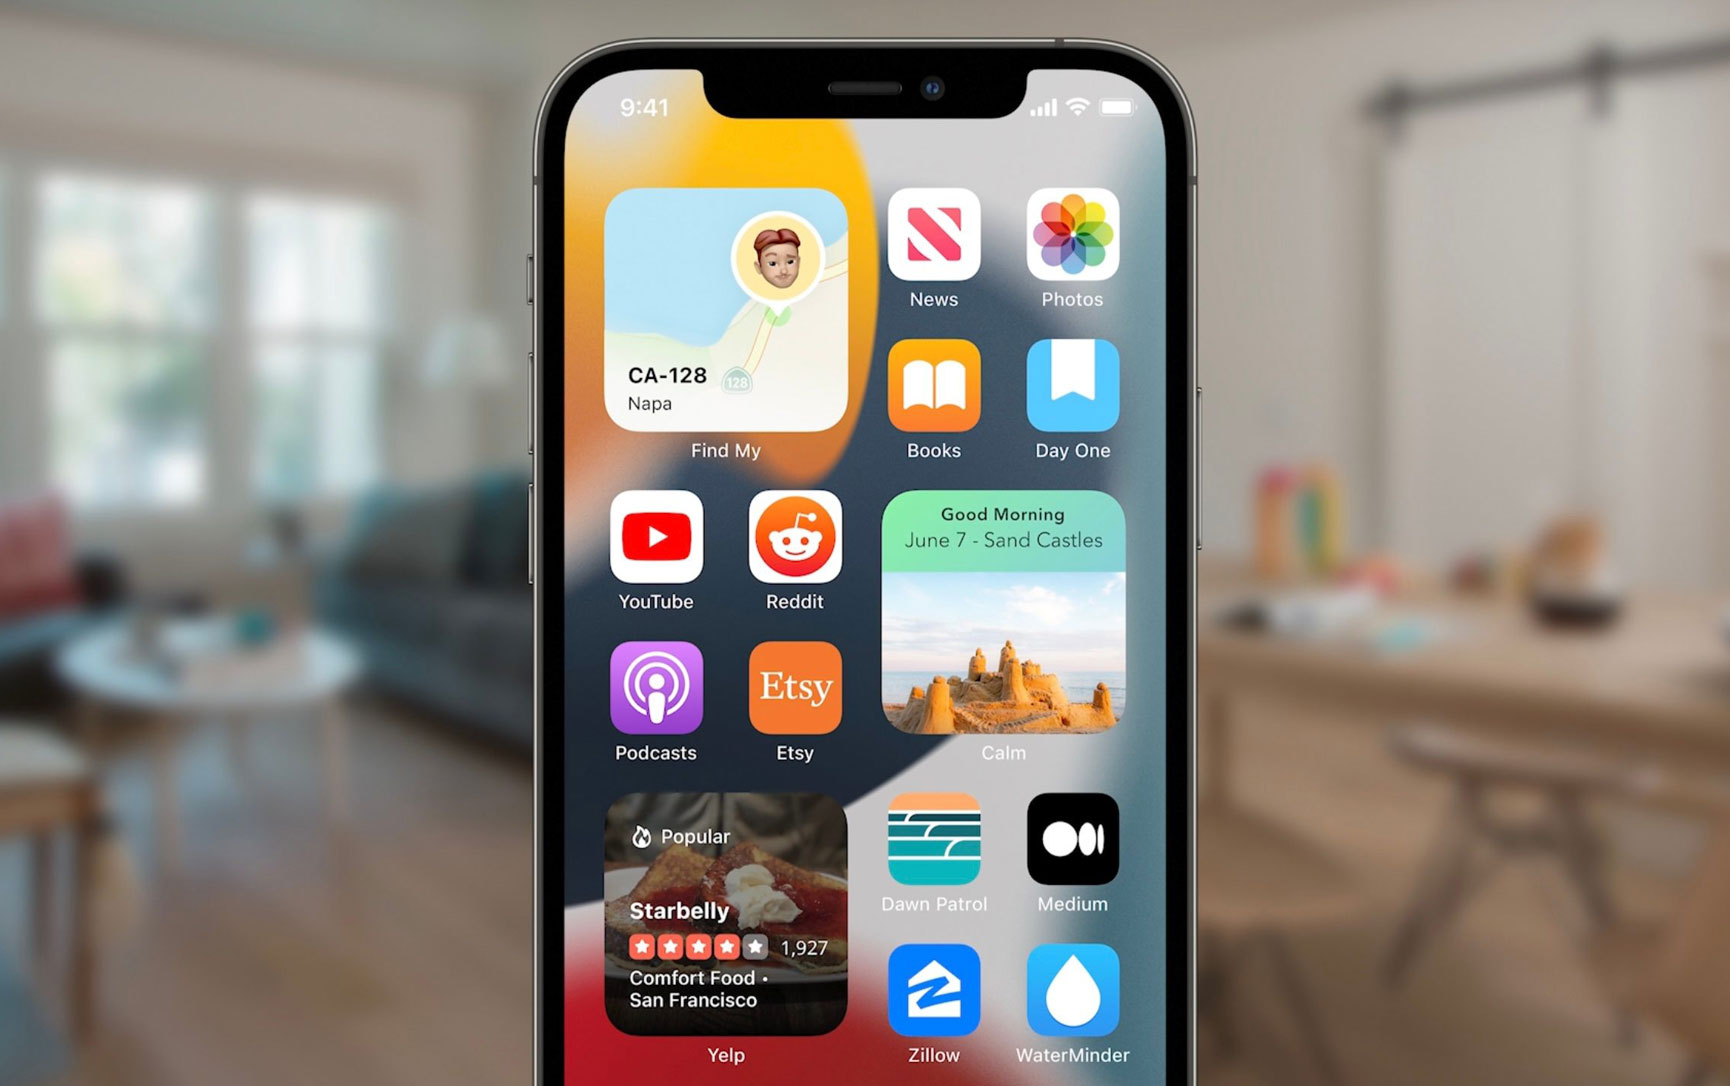 Users cannot find SIM Card after upgrading to the new iOS 15 system